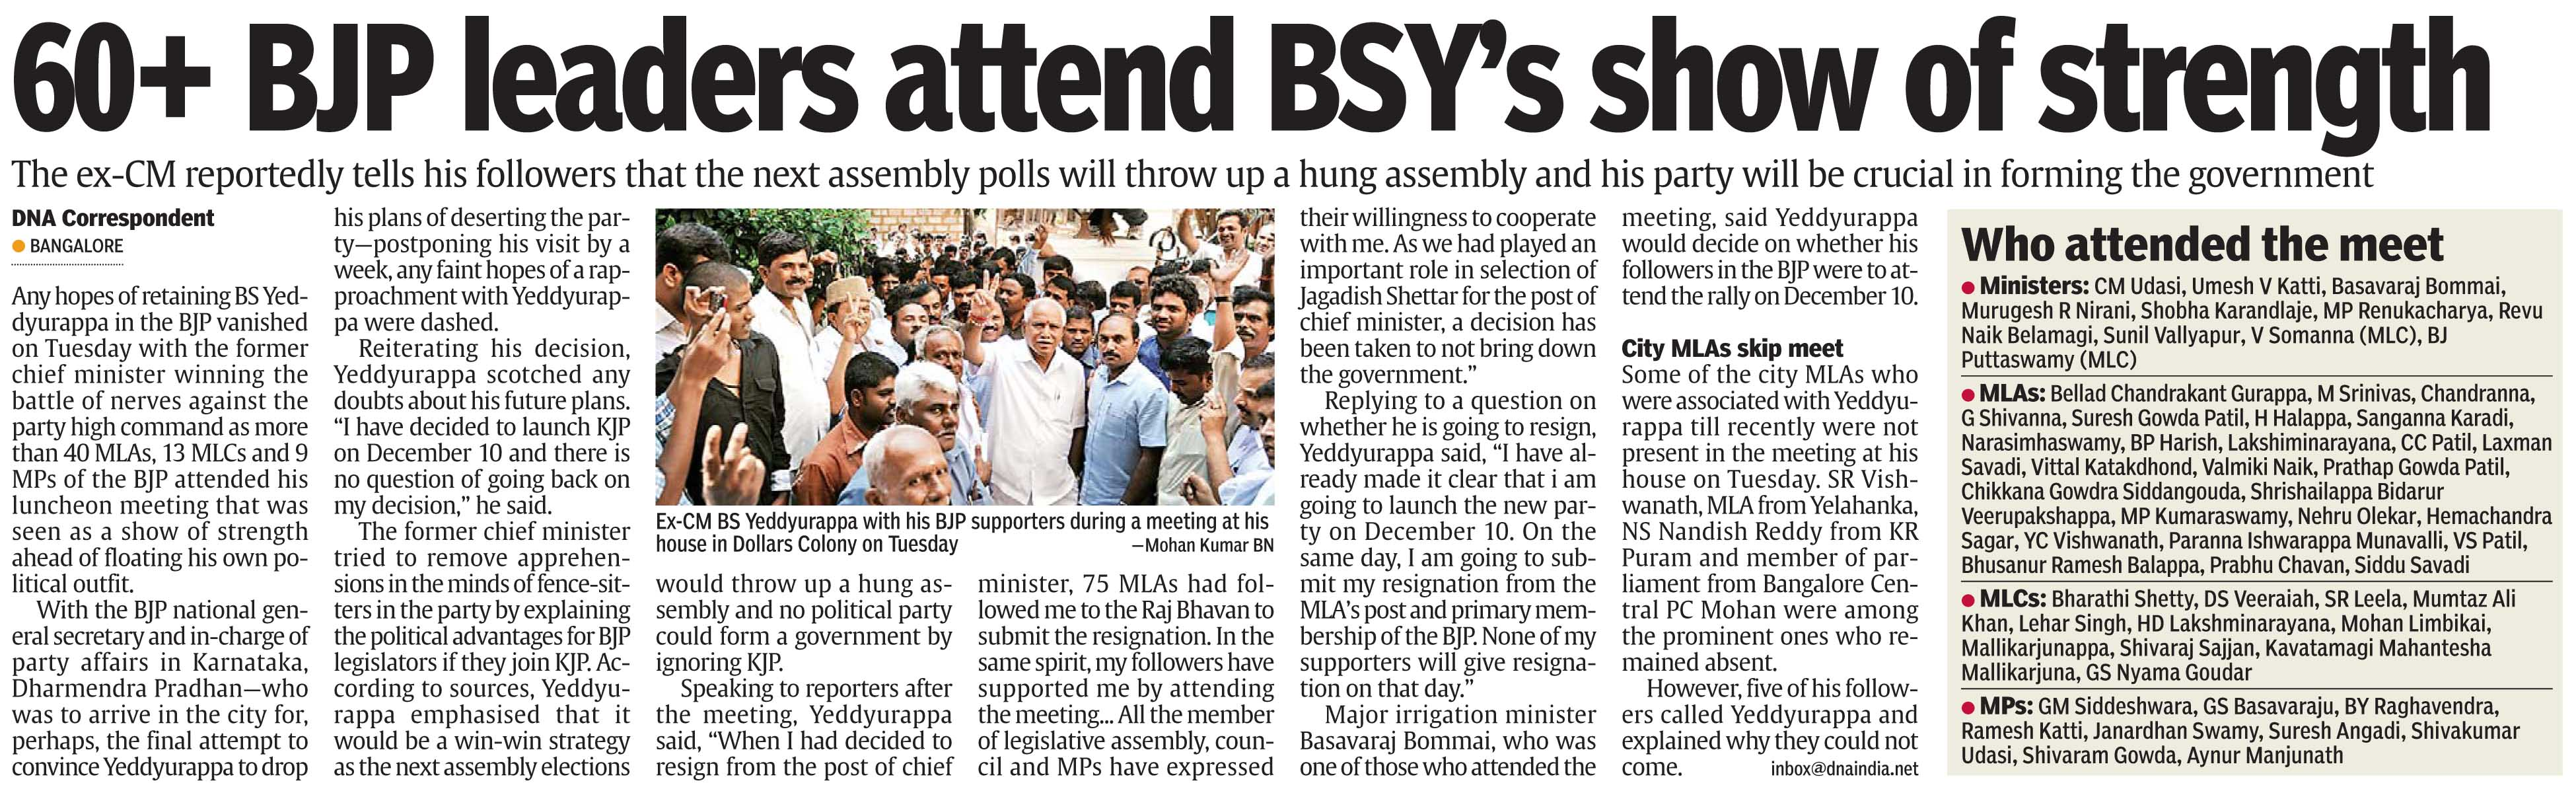 60+ BJP leaders attend BSY's show of strength